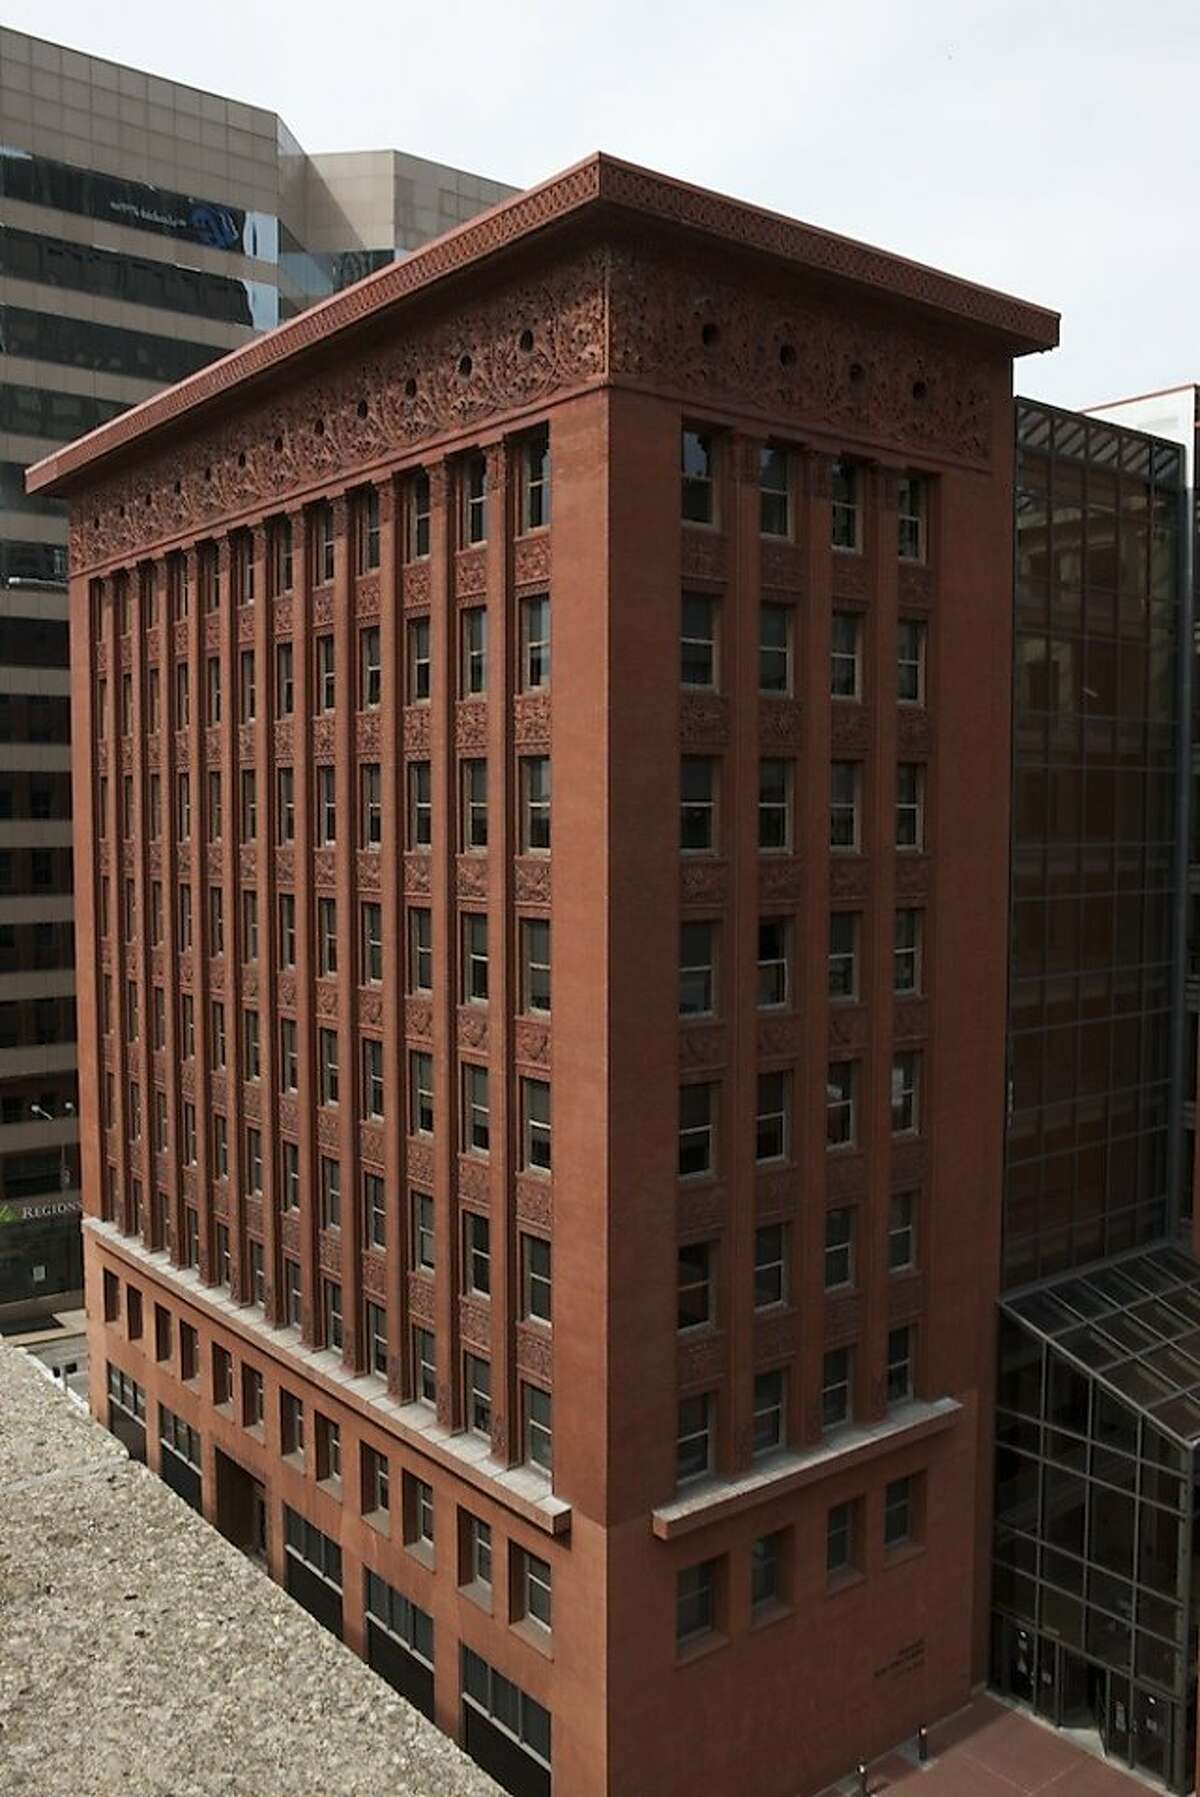 Louis Sullivan?•s Wainwright Building was not the first skyscraper, but it gave the modern, steel-frame skyscraper its form. Historian Tim Samuelson said it ?'taught the skyscraper to soar.?